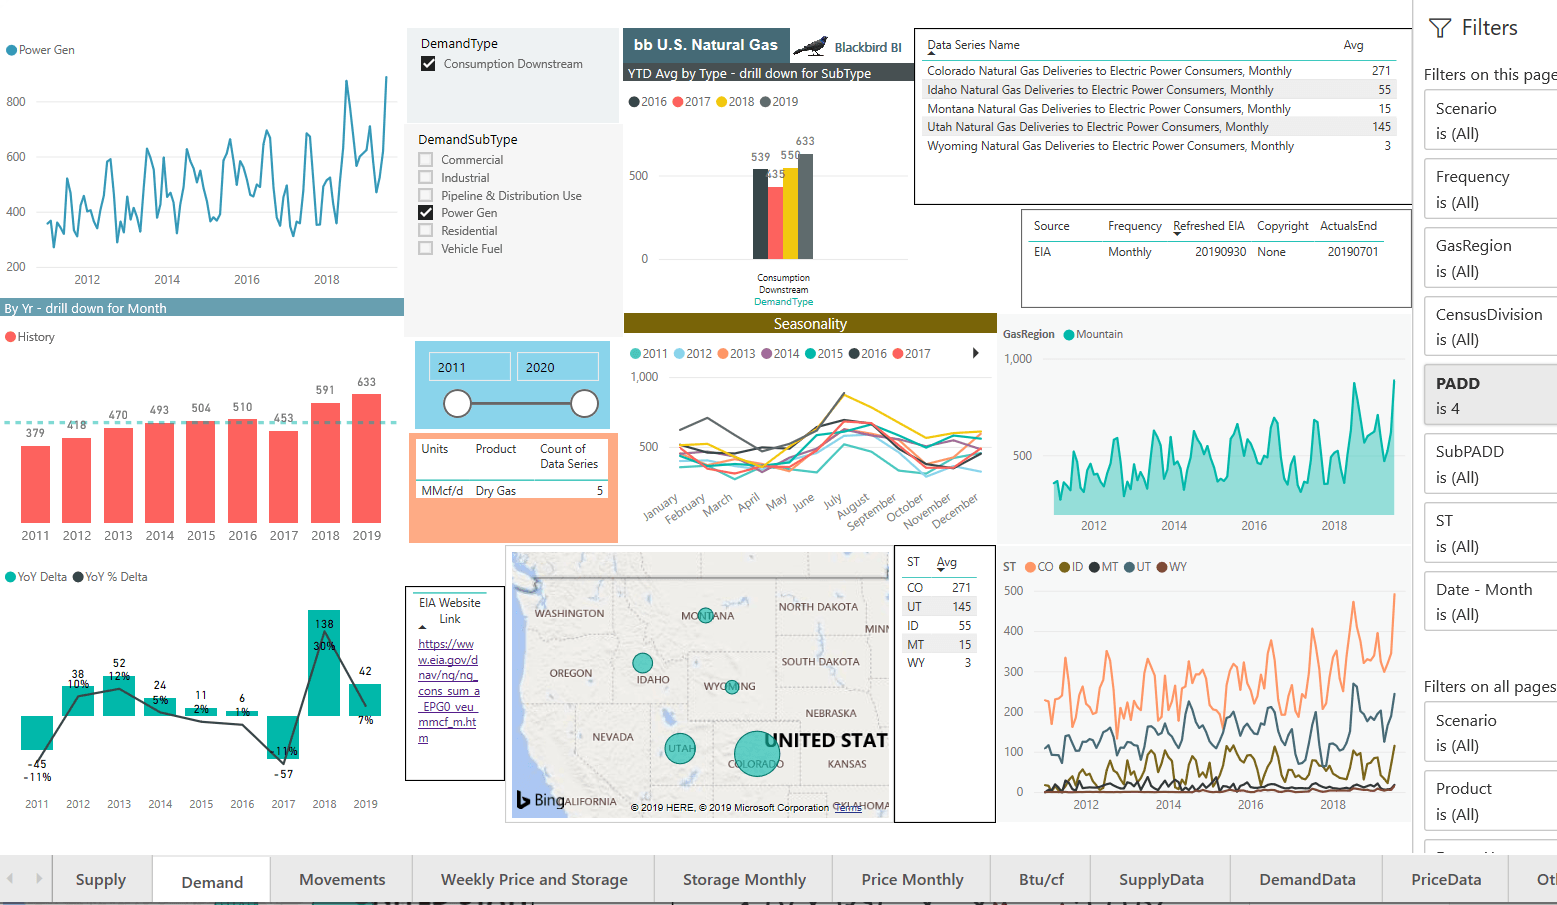 Image of Blackbird BI data dashboard